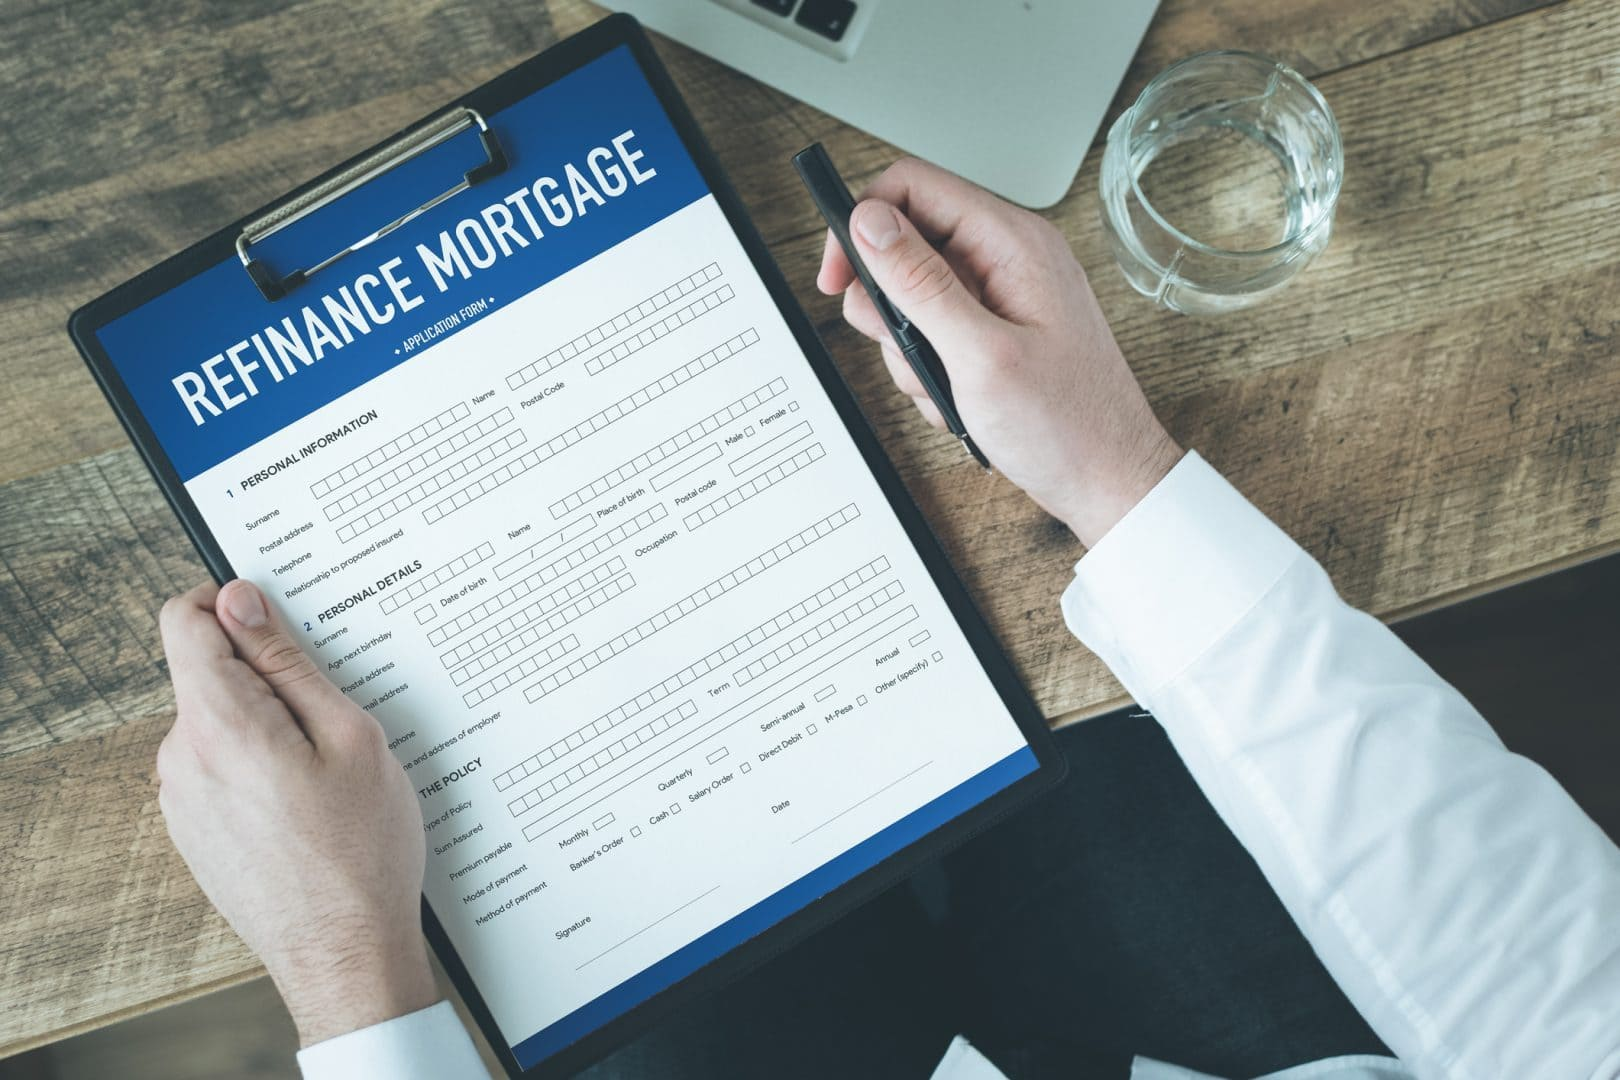 Can't Afford Minnesota Mortgage Due to a Divorce Refinance Sheet